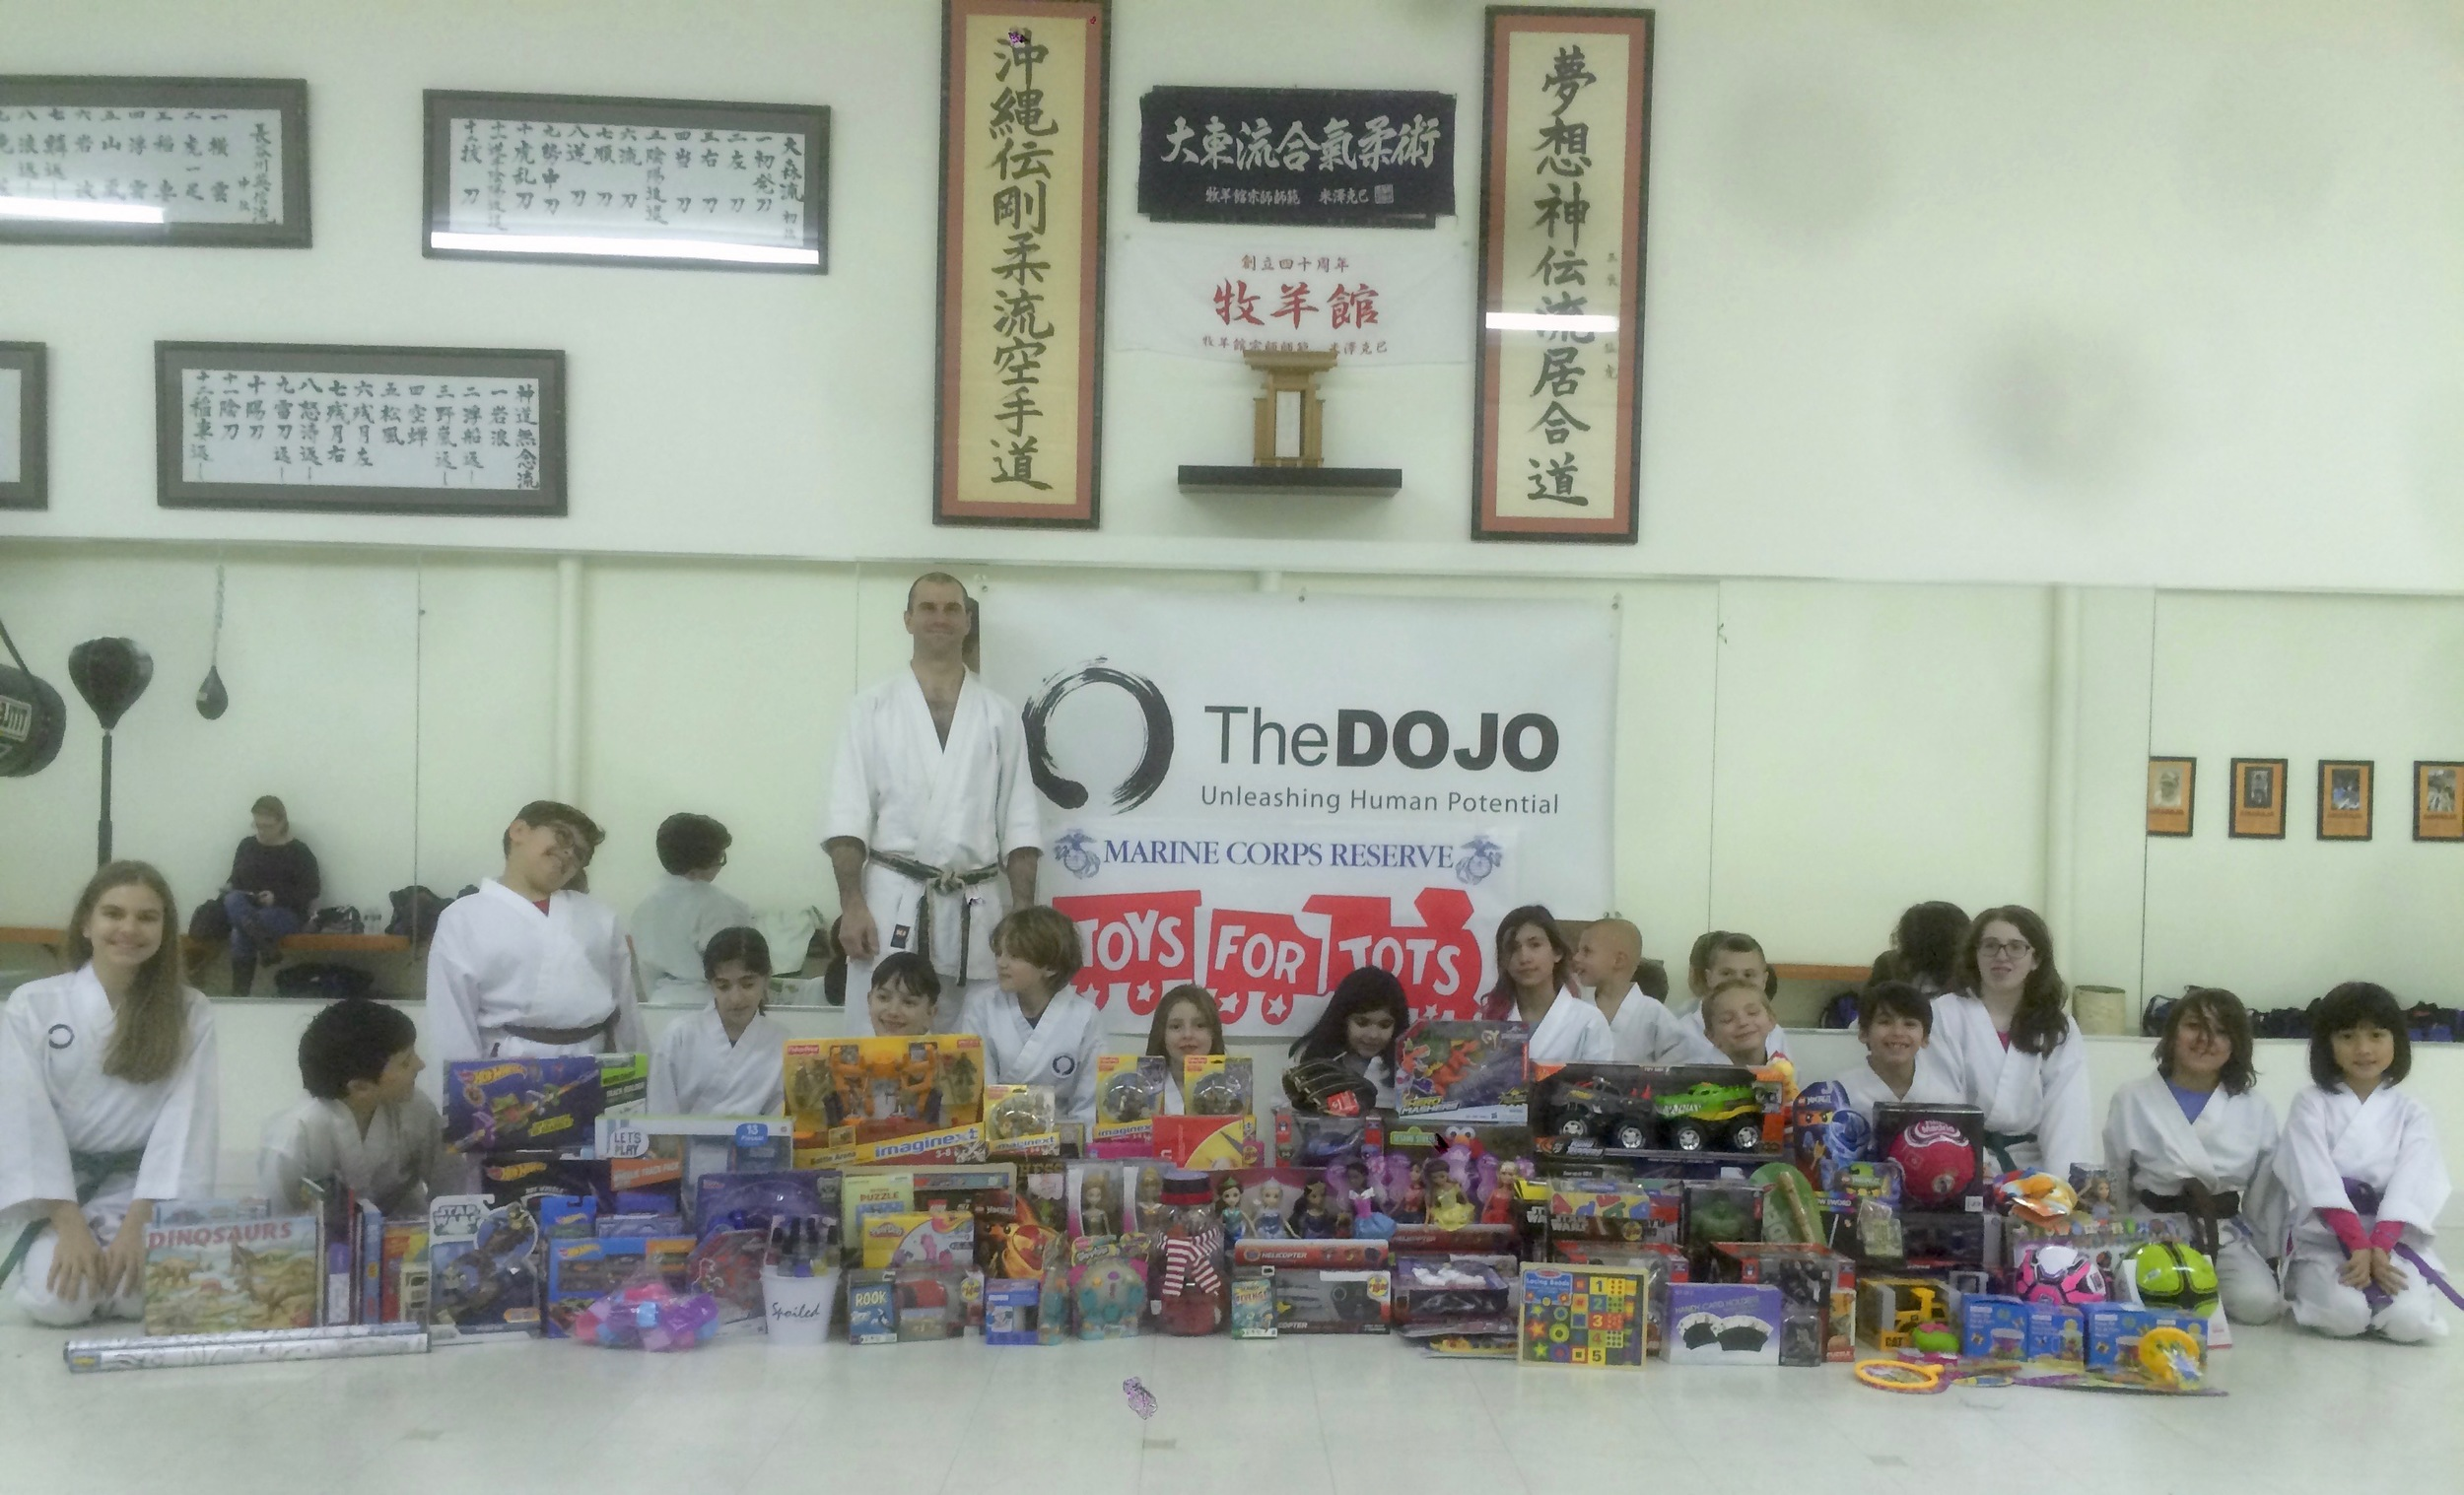 toys-for-tots---thedojo-toy-drive_23803715366_o.jpg